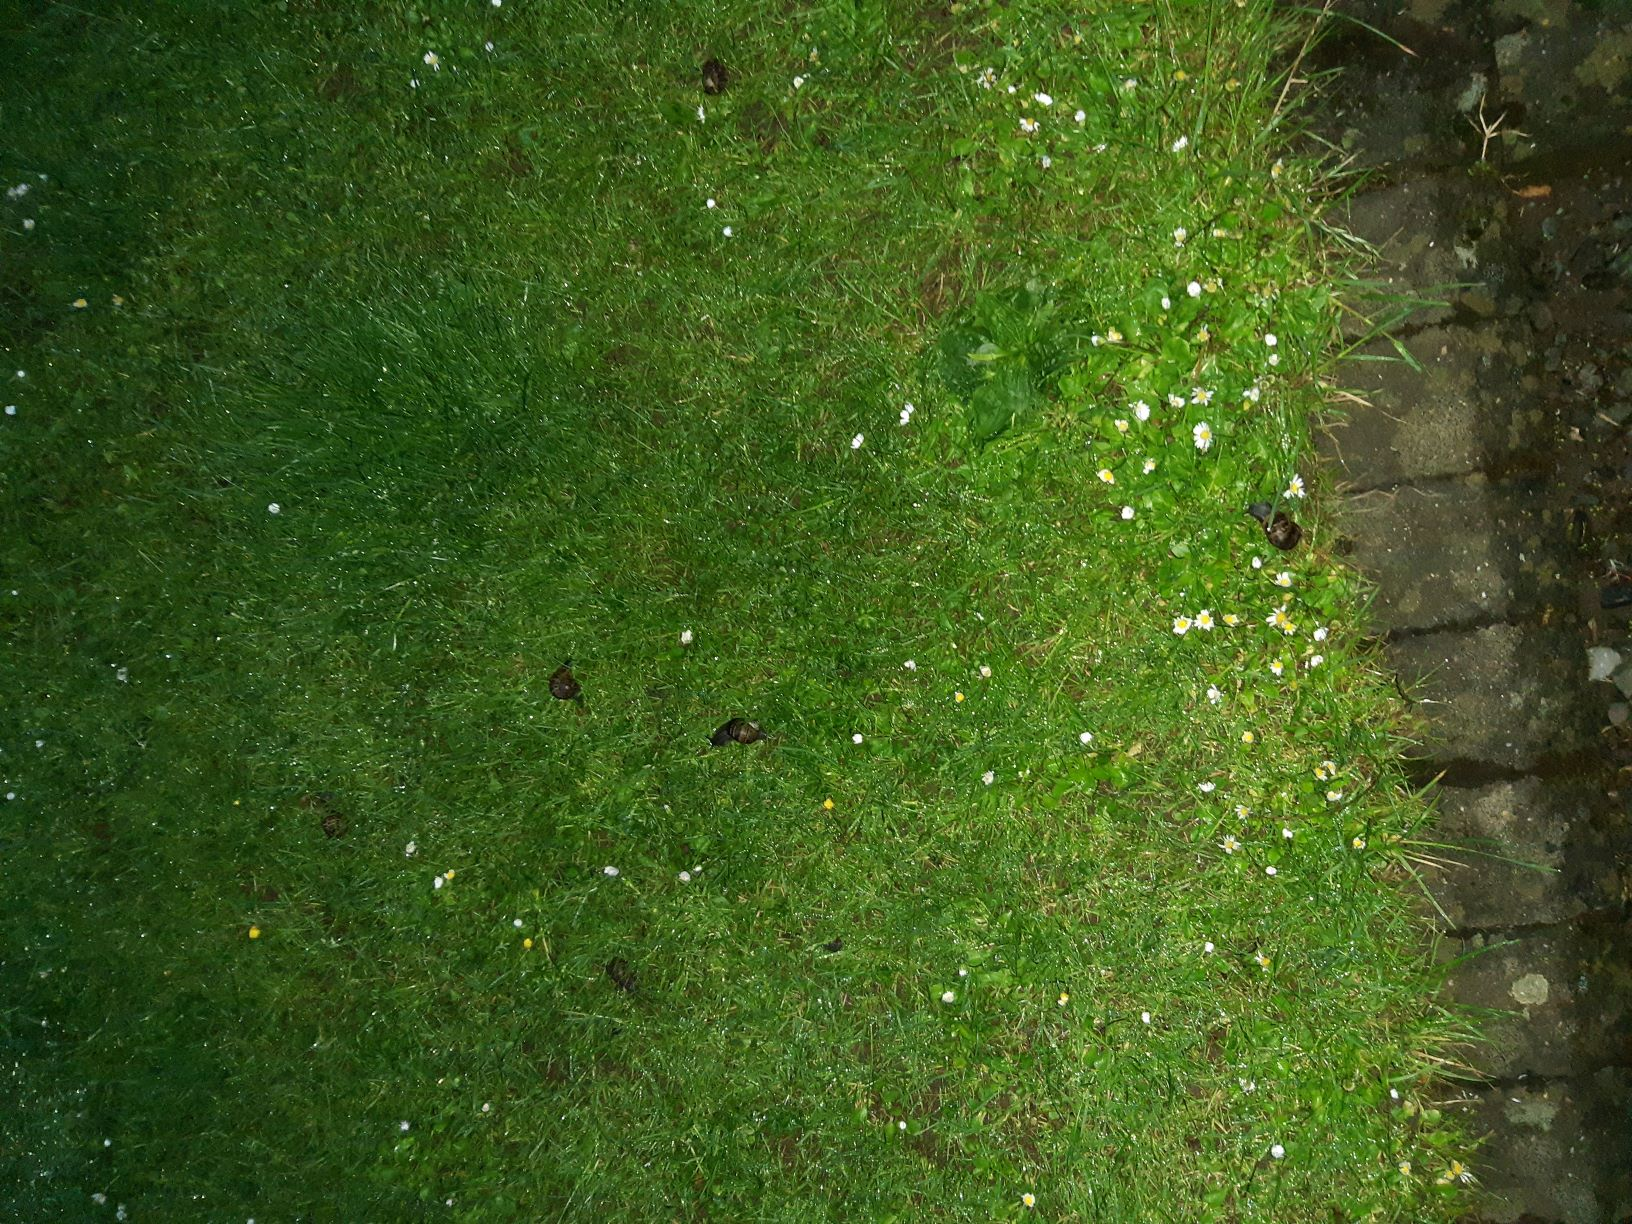 This image shows the lawn at the edge of the courtyard's gravel section. The grass is spotted with closed daisies and buttercups. There are 6 snails in an area of about one or two square meters